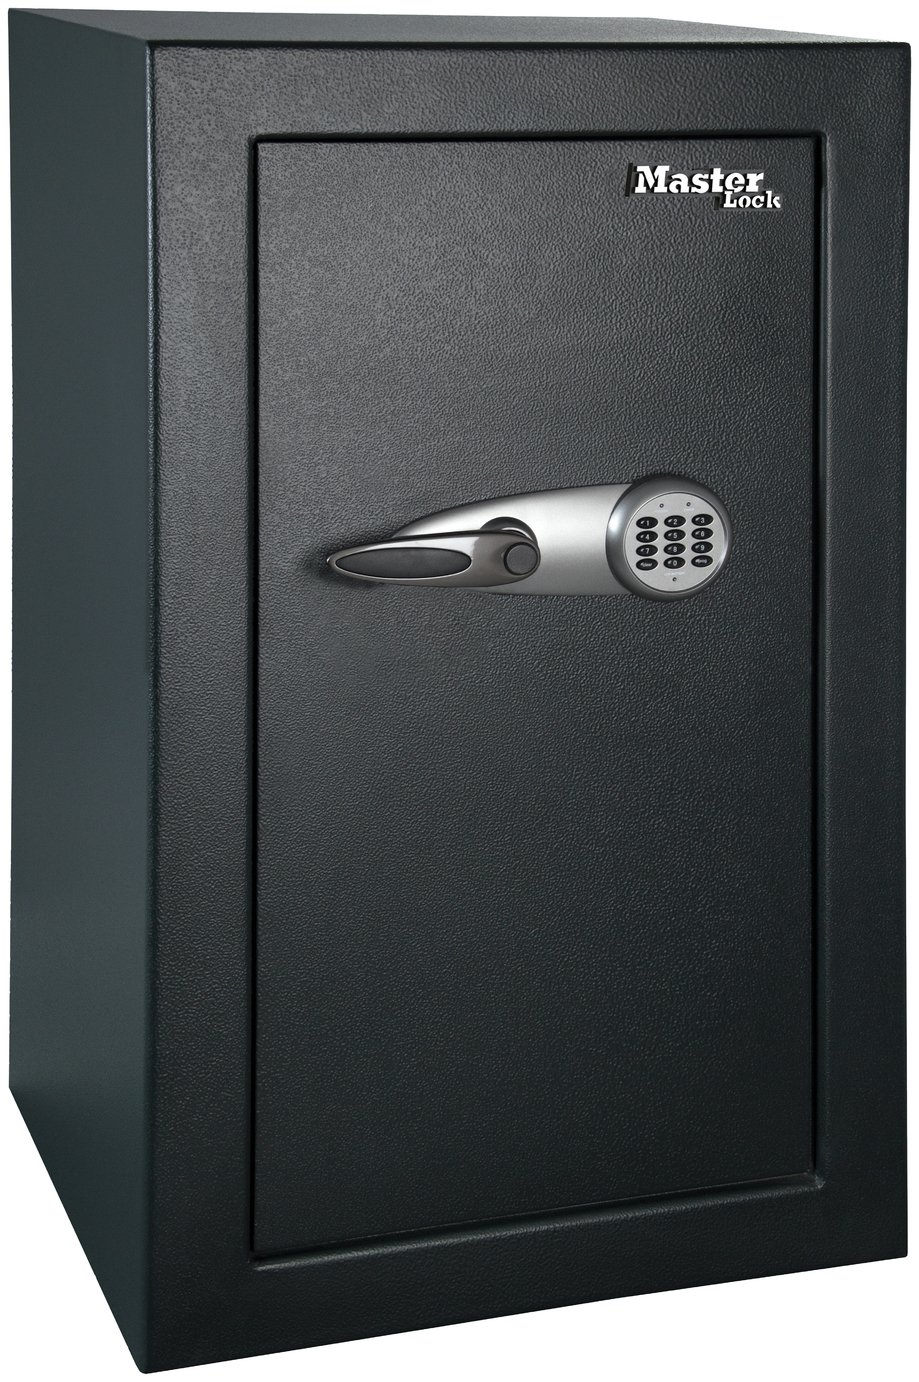 Master Lock XXL High Security Safe